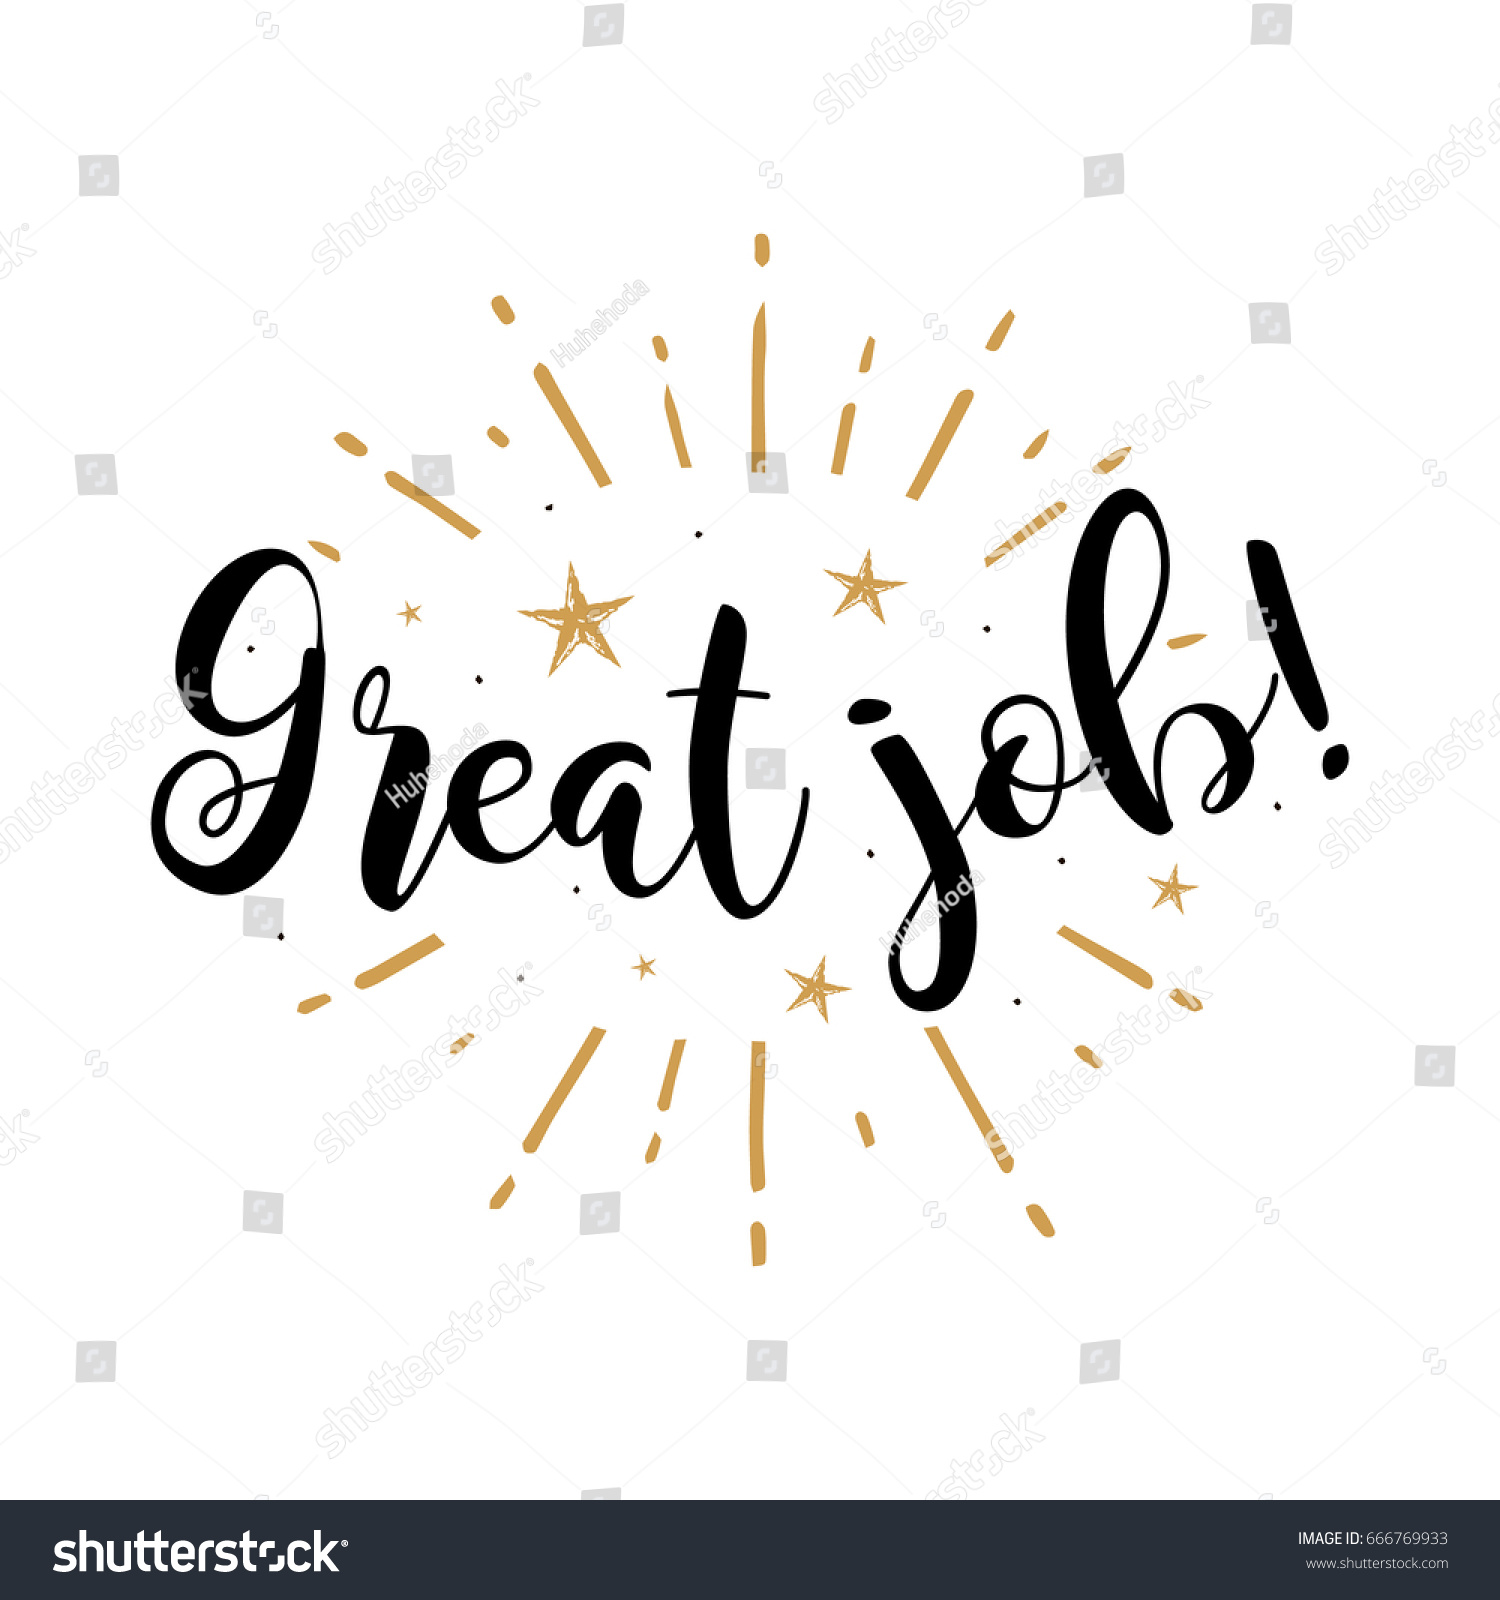 Great job beautiful greeting card poster stock vector Calligraphy as a career